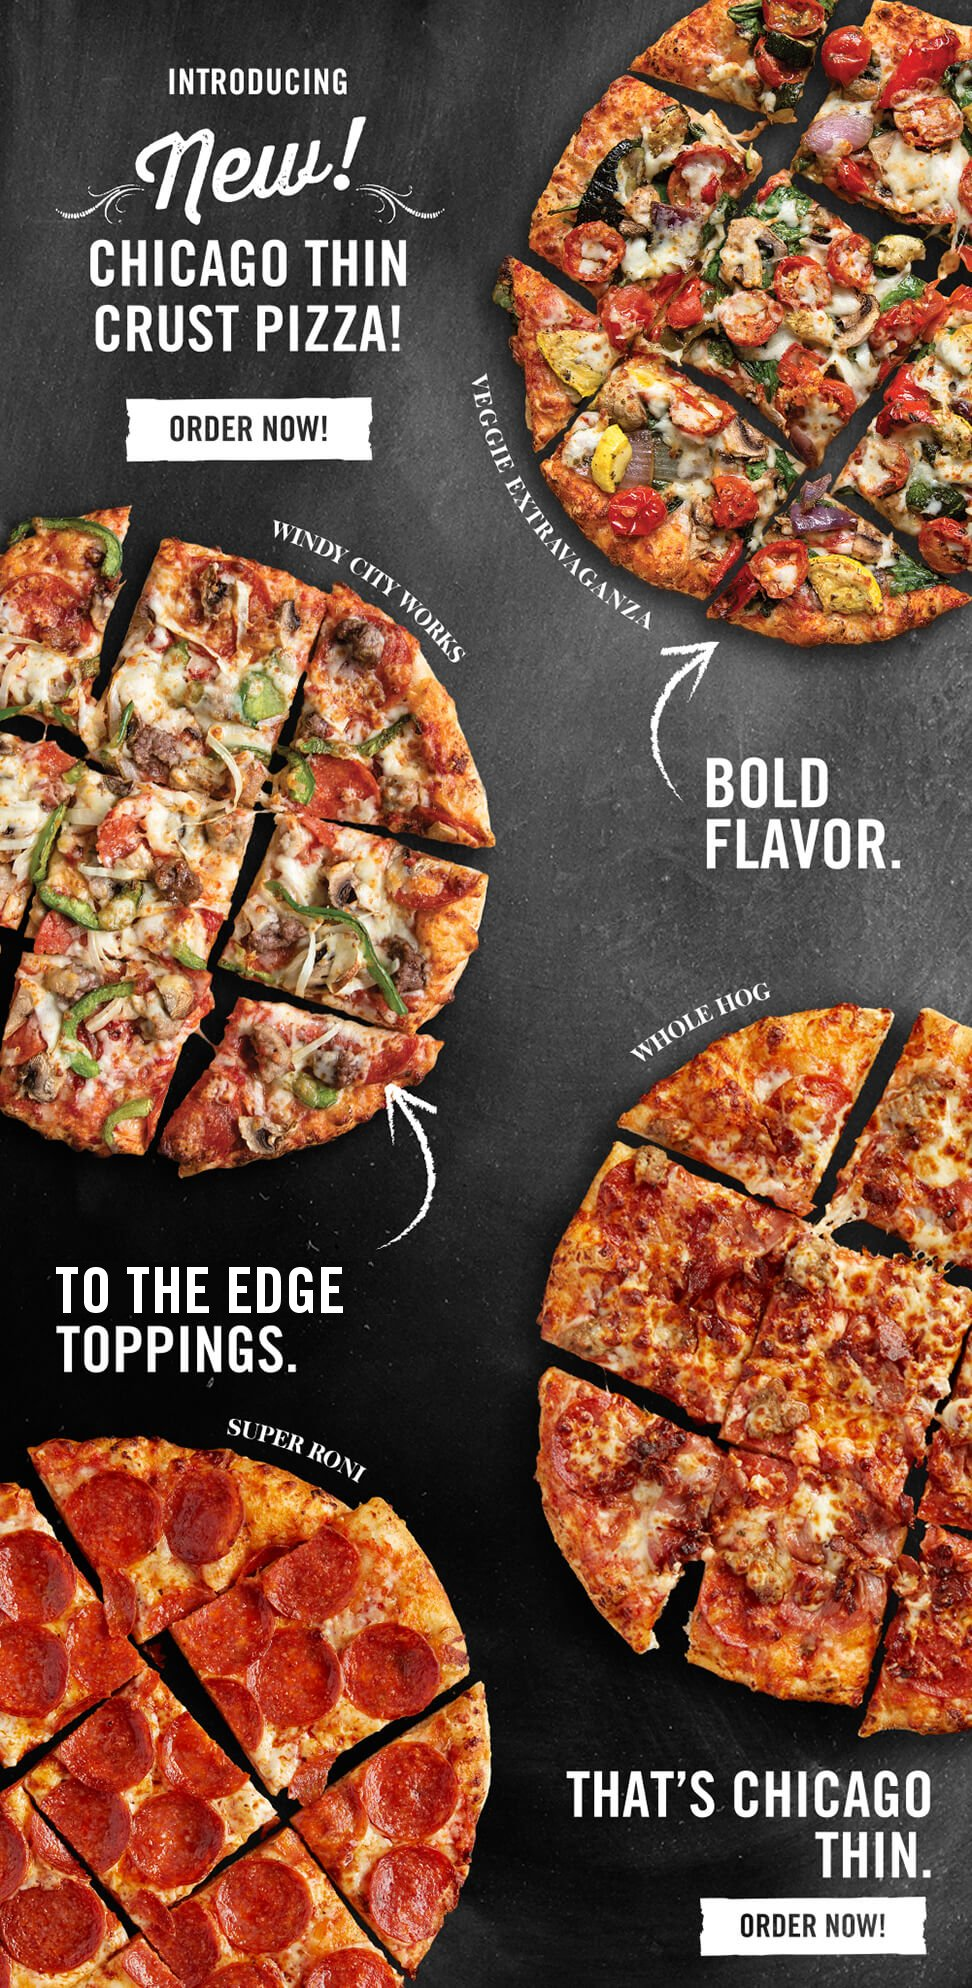 New! - Introducing Chicago Thin Crust Pizza!